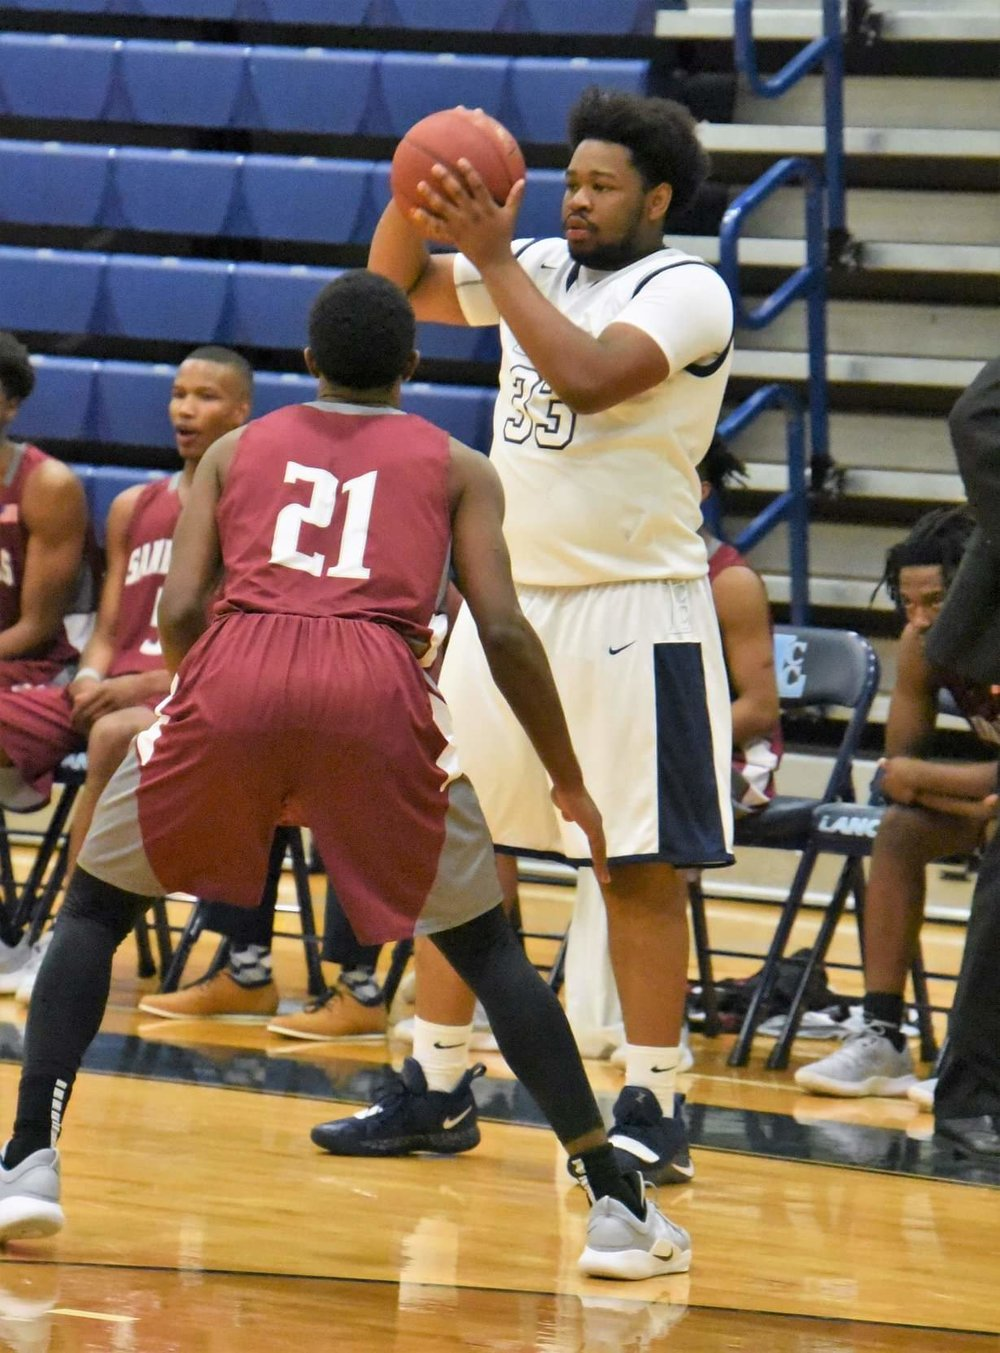 """LCC's Daimian Burnett prepares to make a pass during Wednesday's contest against Sandhills CC. Photo by William """"Bud"""" Hardy / Neuse News"""